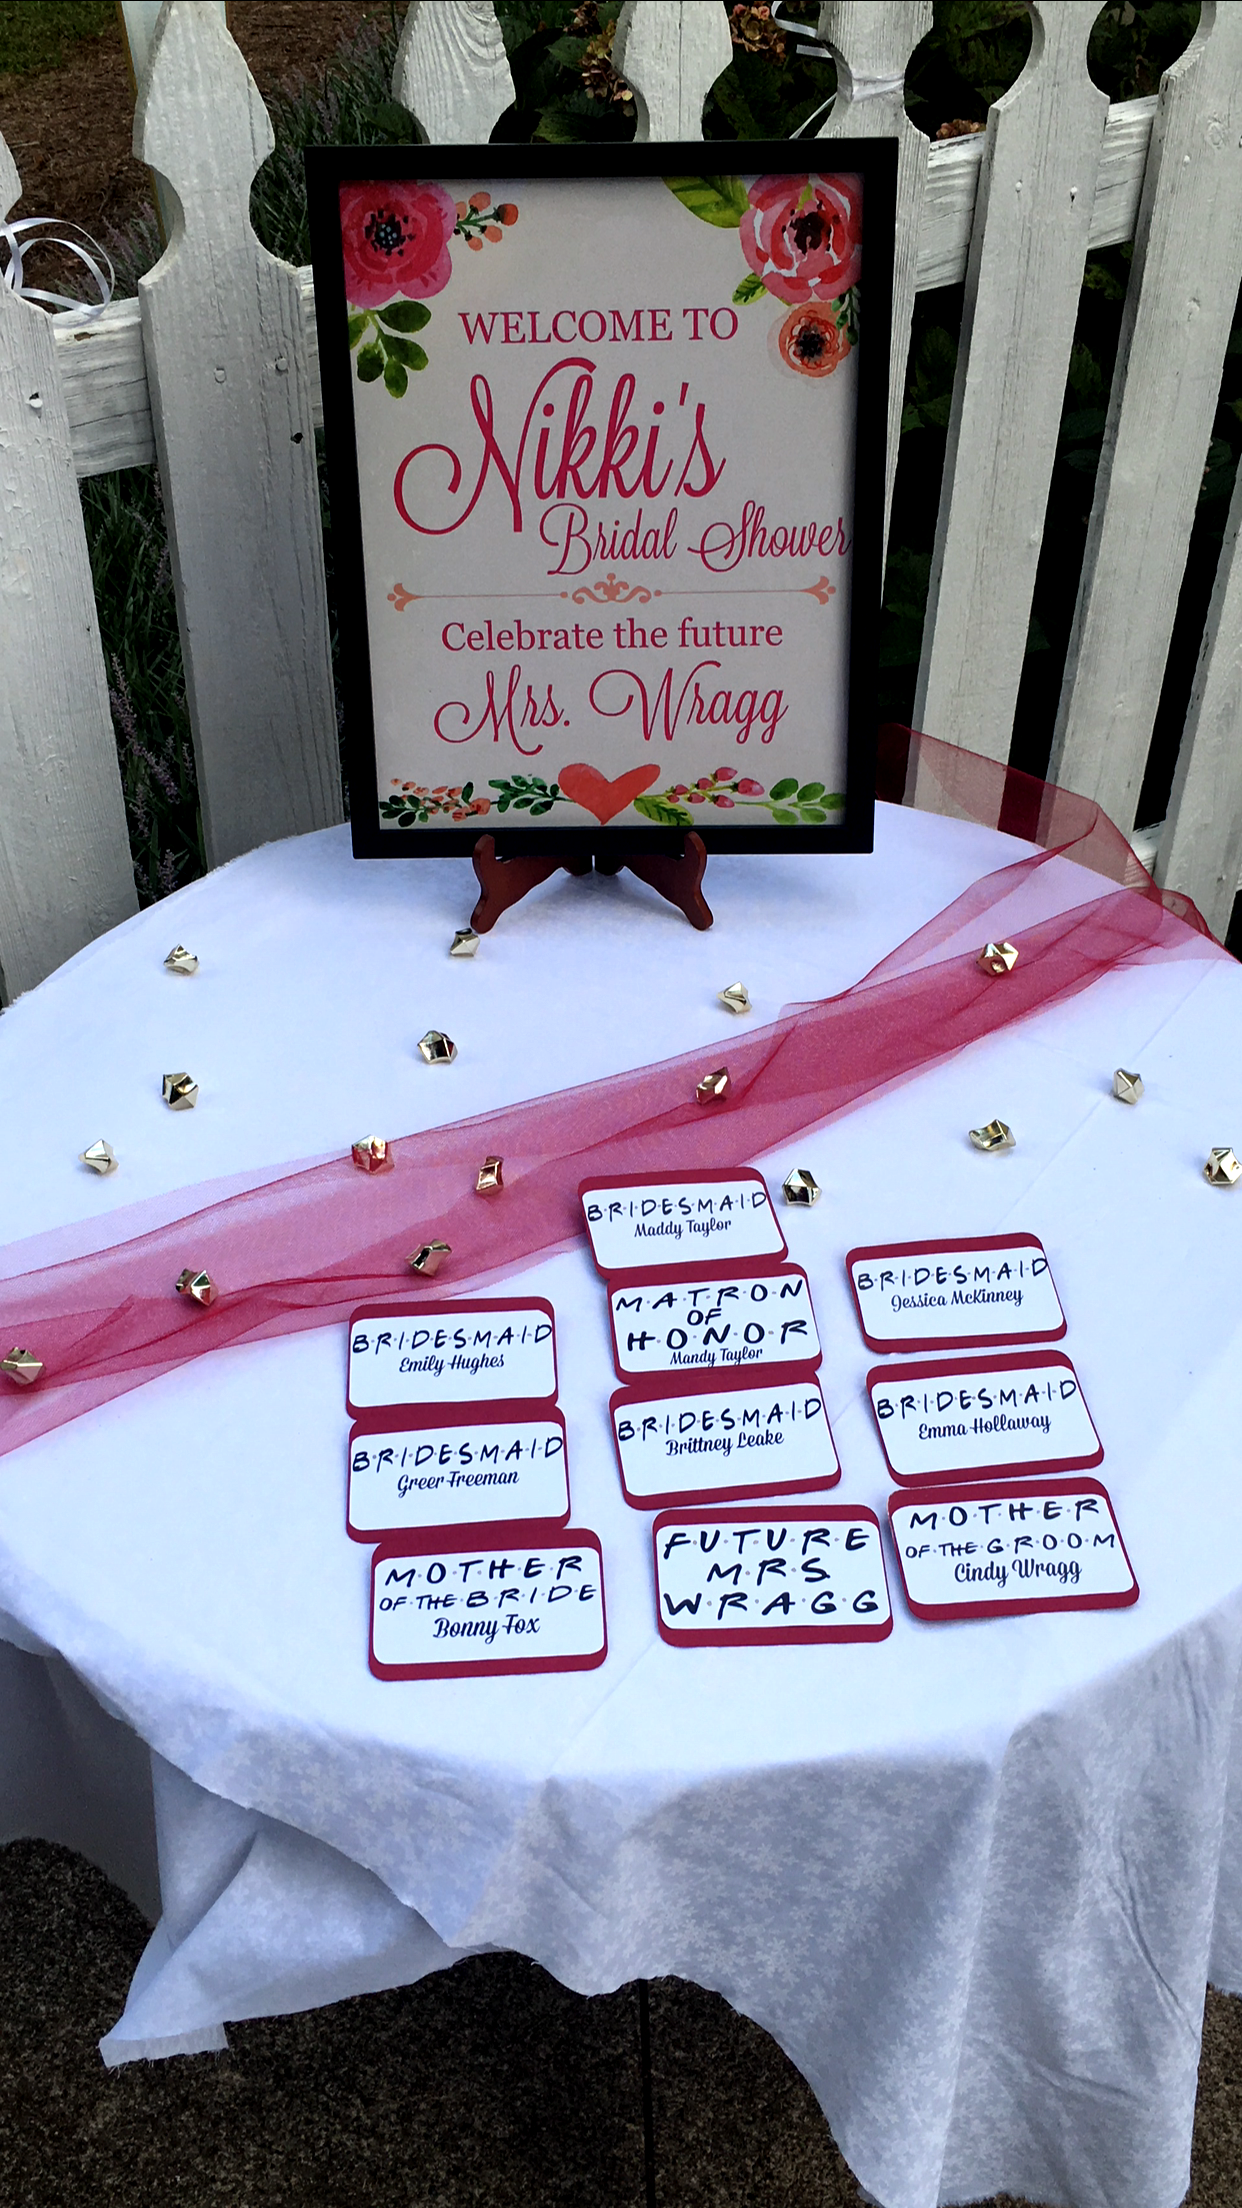 Again, I designed all the signs and printed them at Walgreens. I printed and cut out badges for the bridal party and moms. I downloaded the FRIENDS font to bring in the theme!